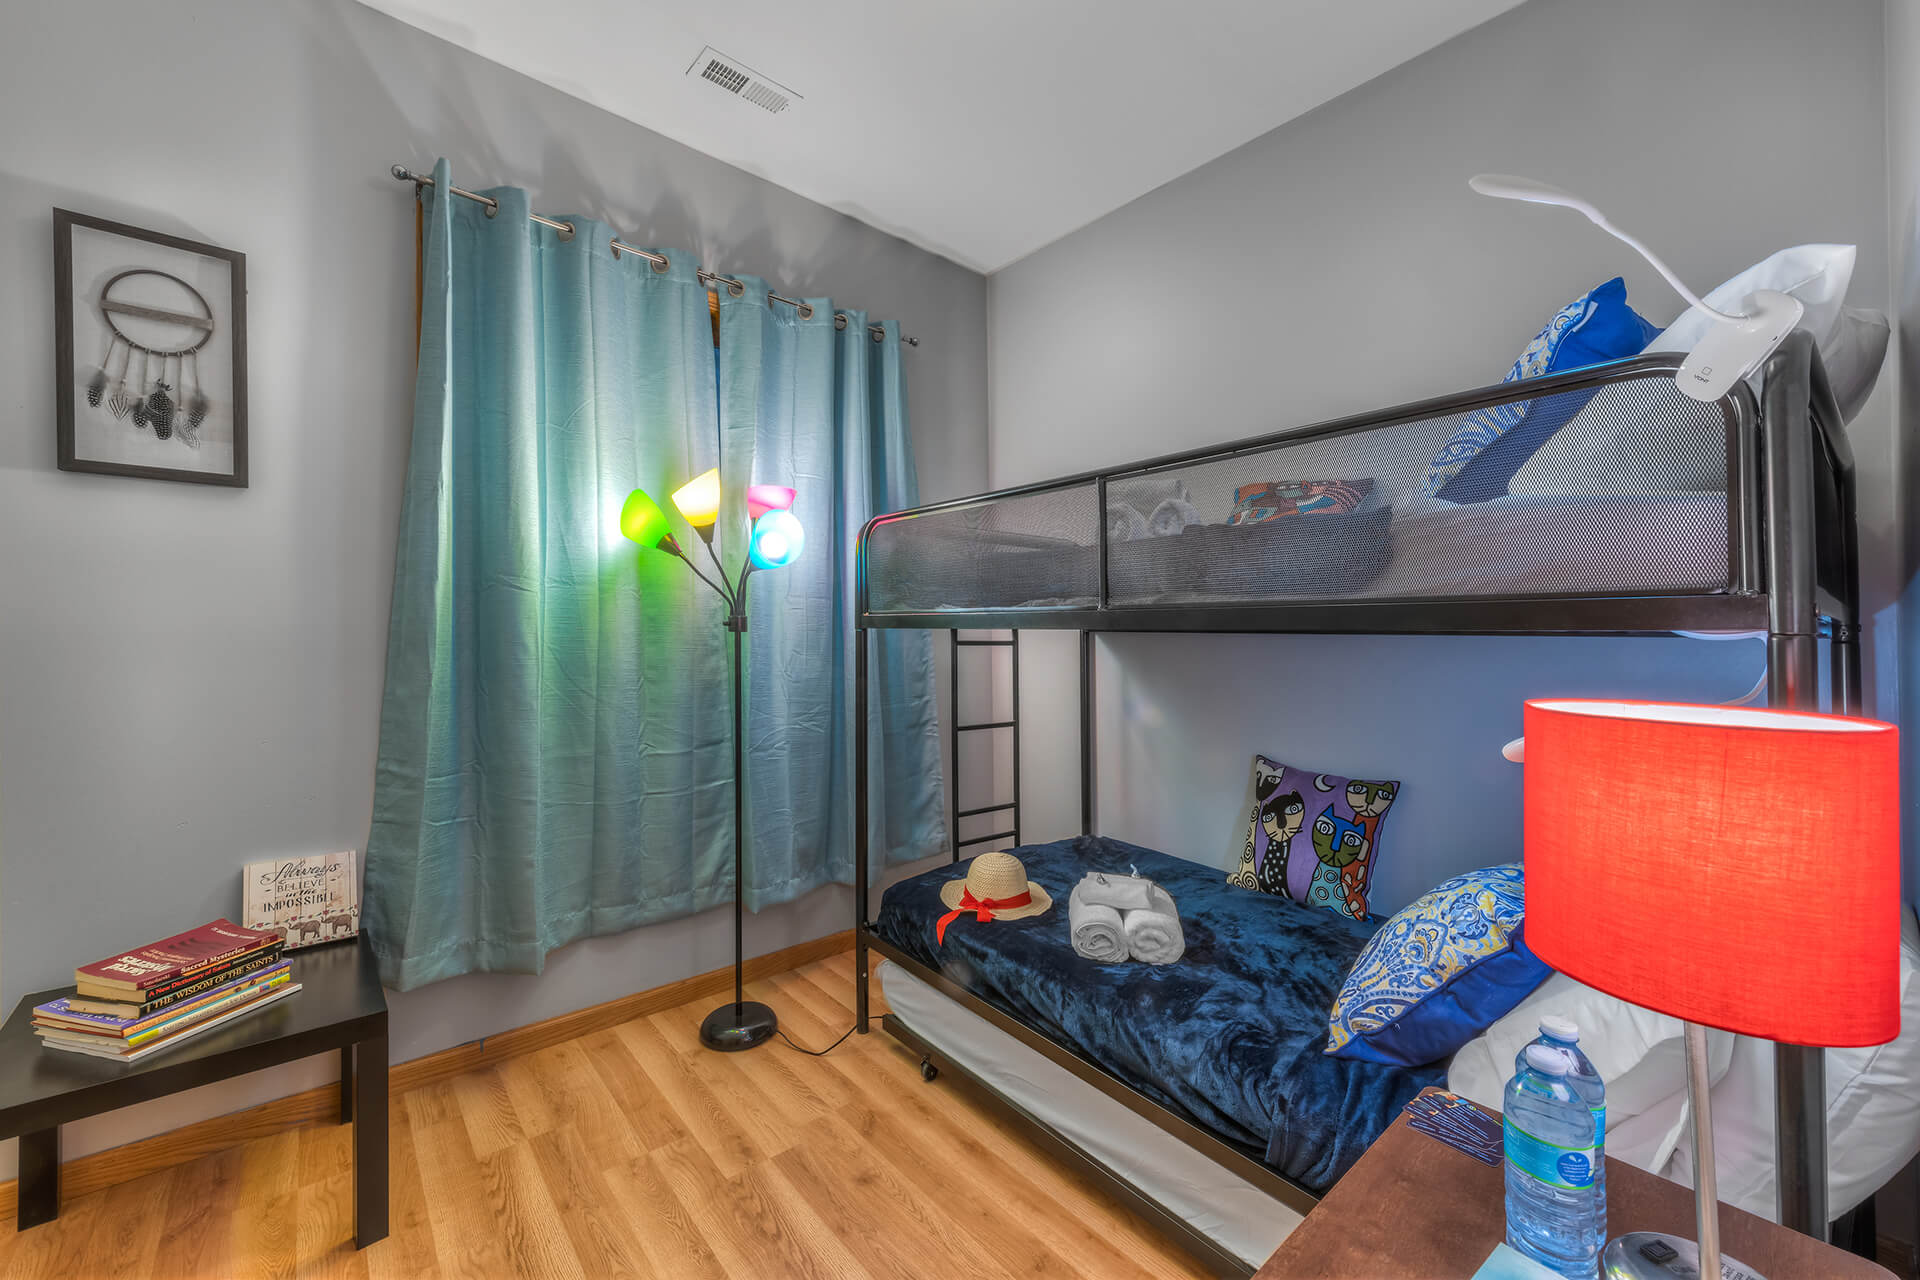 5848 S Prairie Ave, Illinois, 1 Bedroom Bedrooms, ,1 BathroomBathrooms,One Bunk Bed,For Long Rent,5848 S Prairie Ave,1,1229